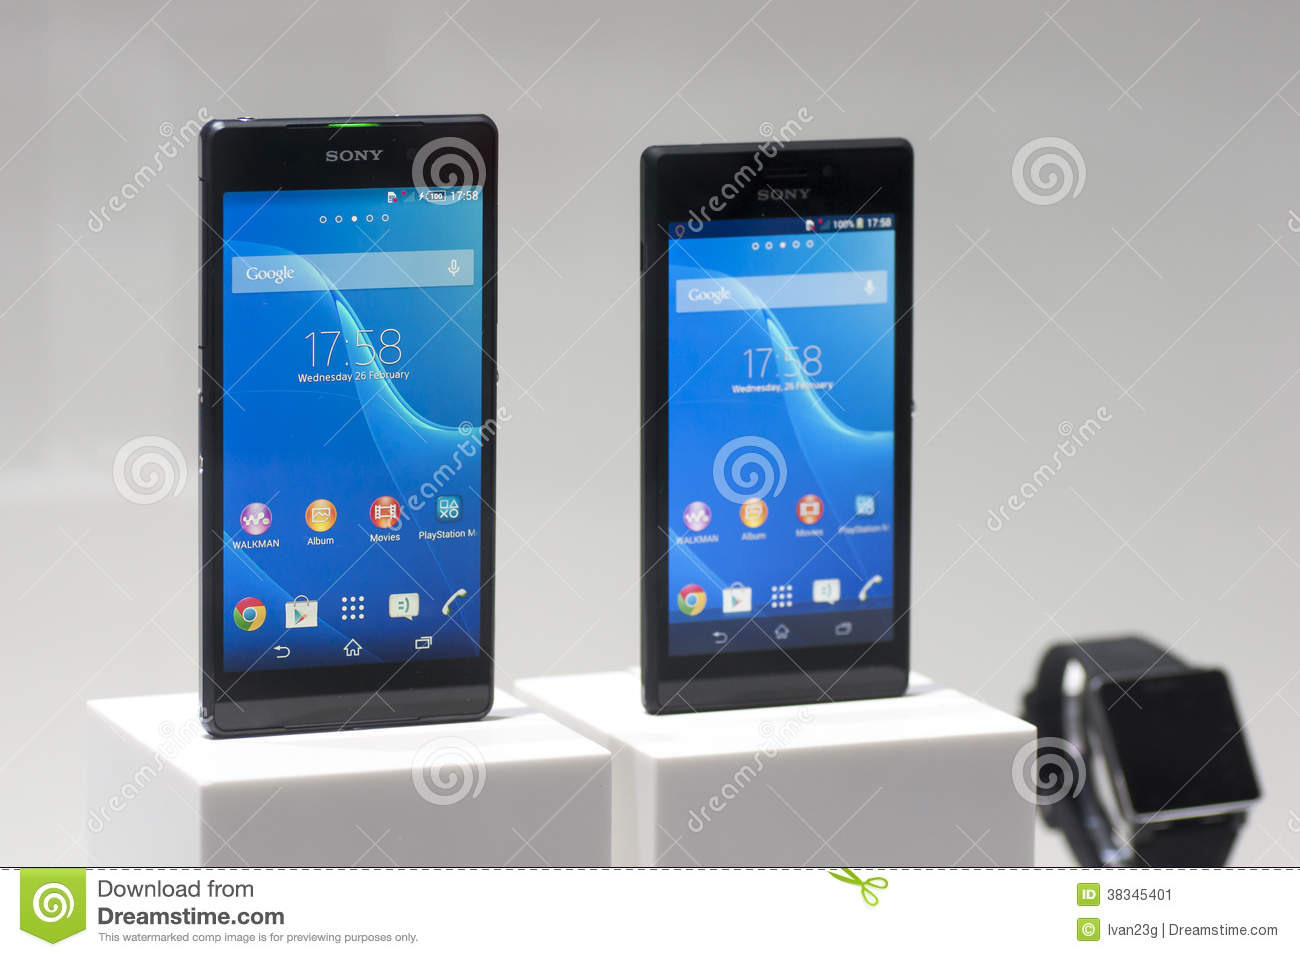 SONY XPERIA Z2 & M2, MOBILE WORLD CONGRESS 2014 Editorial